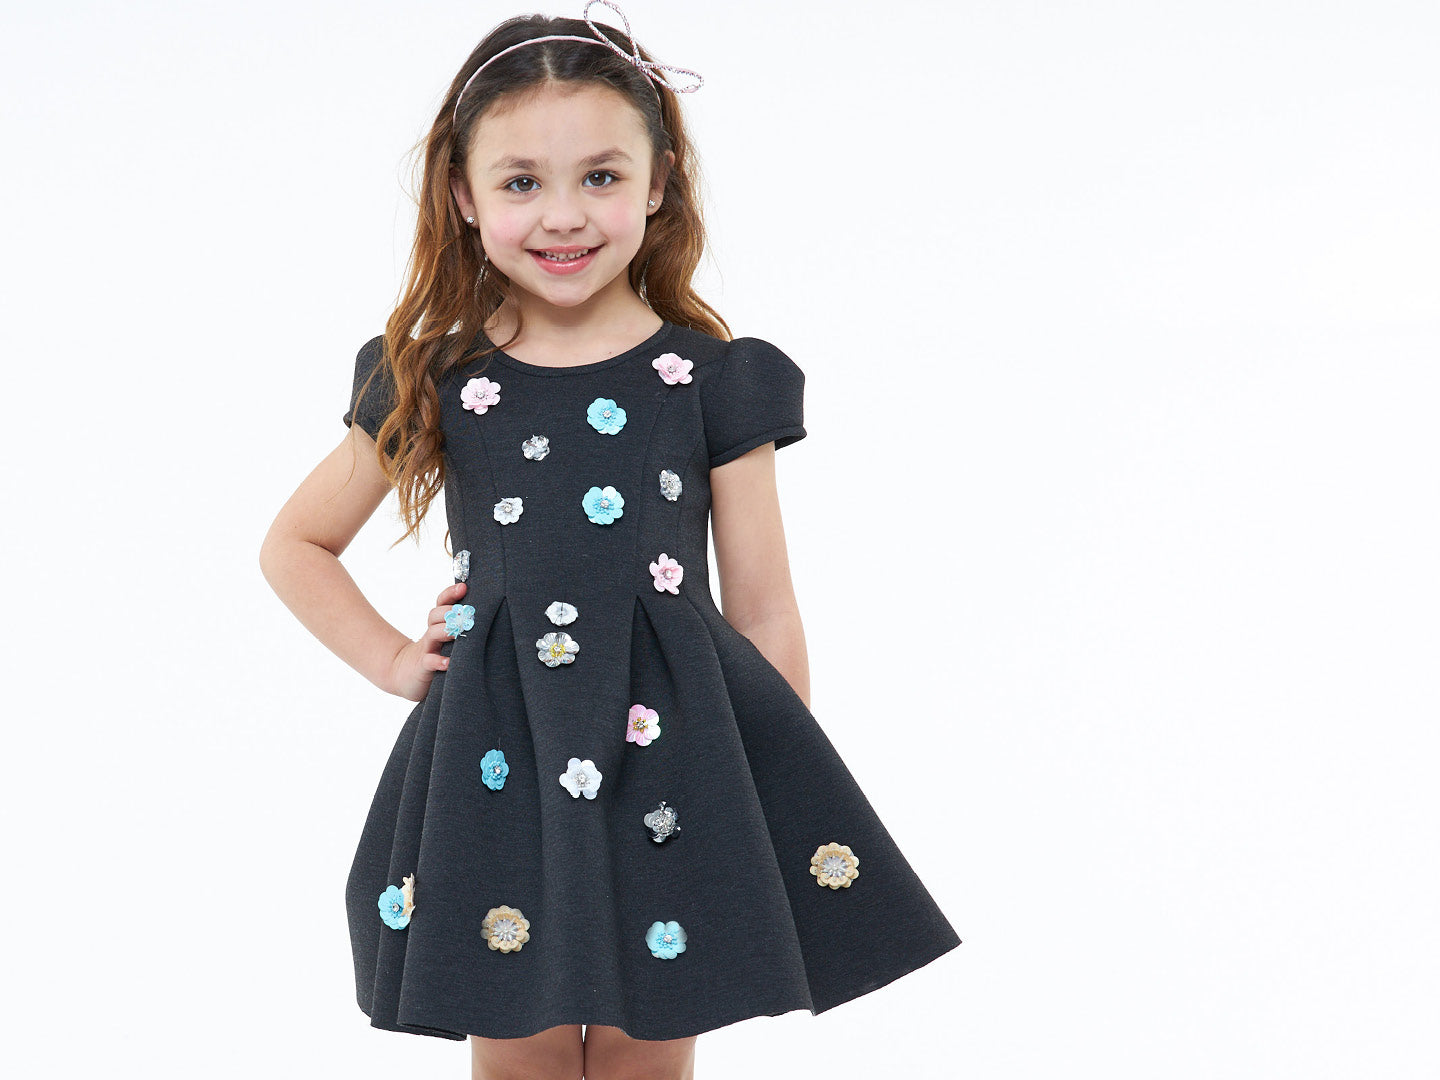 Scuba dress with sequin flowers